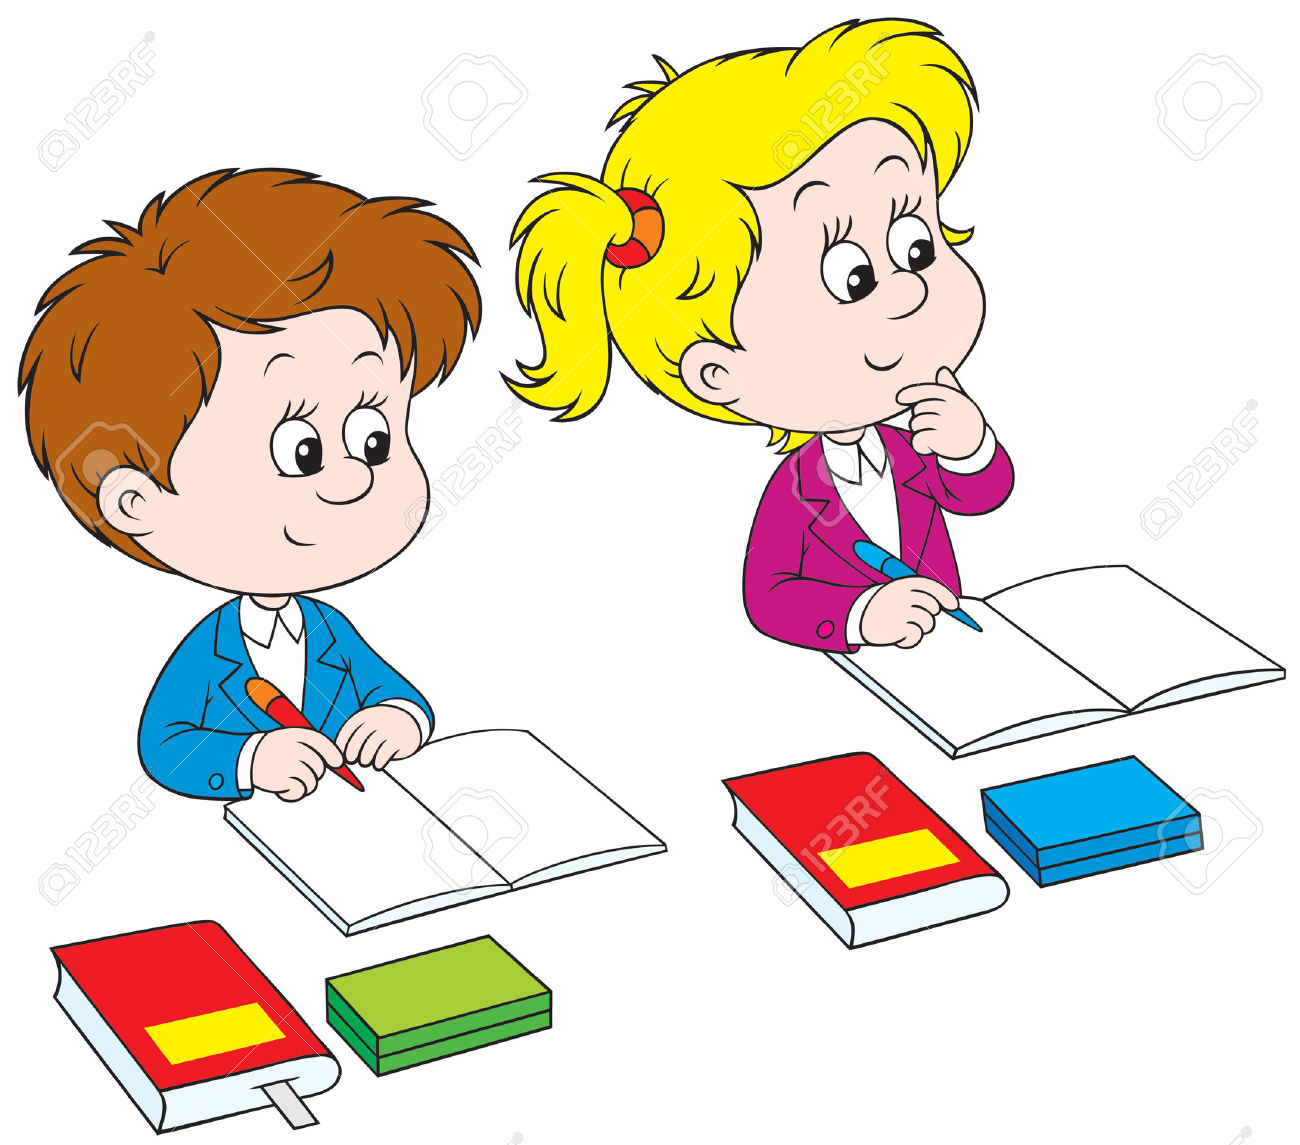 Kids Writing Clipart Schoolchildren Royalty Free Cliparts Vectors And ...: clipartion.com/free-clipart-20790